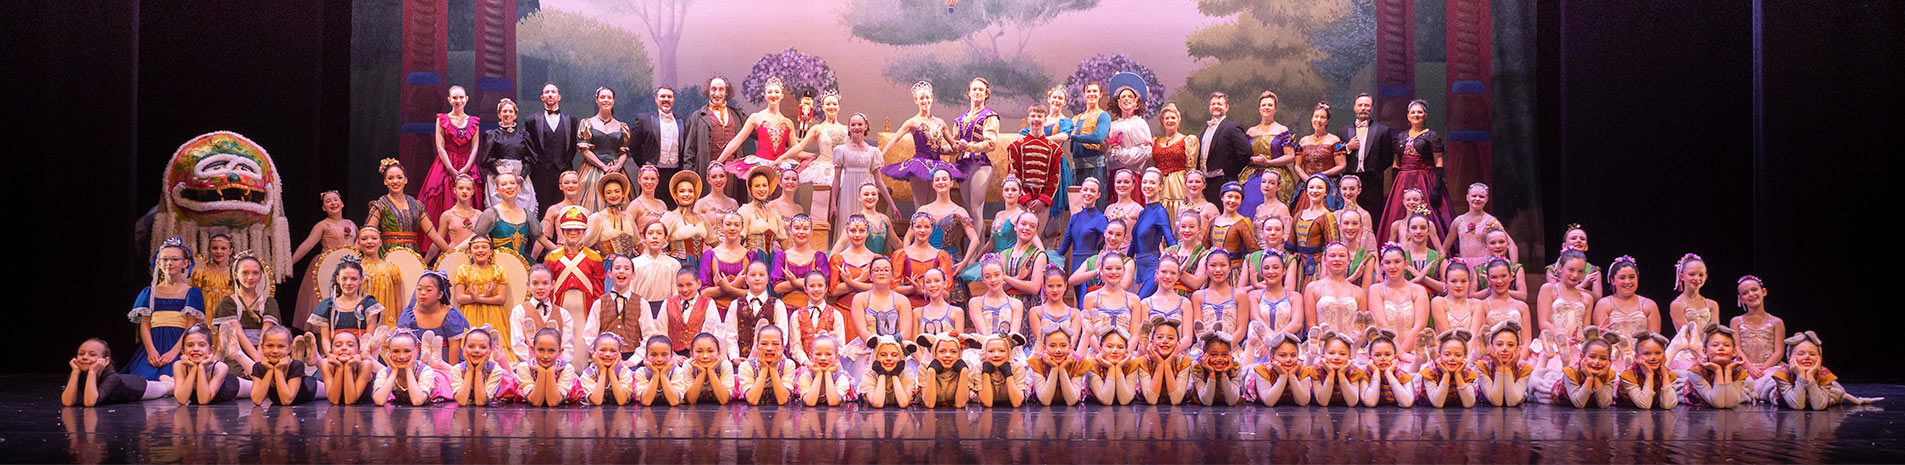 The Nutcracker - All Cast image - Garden City Ballet